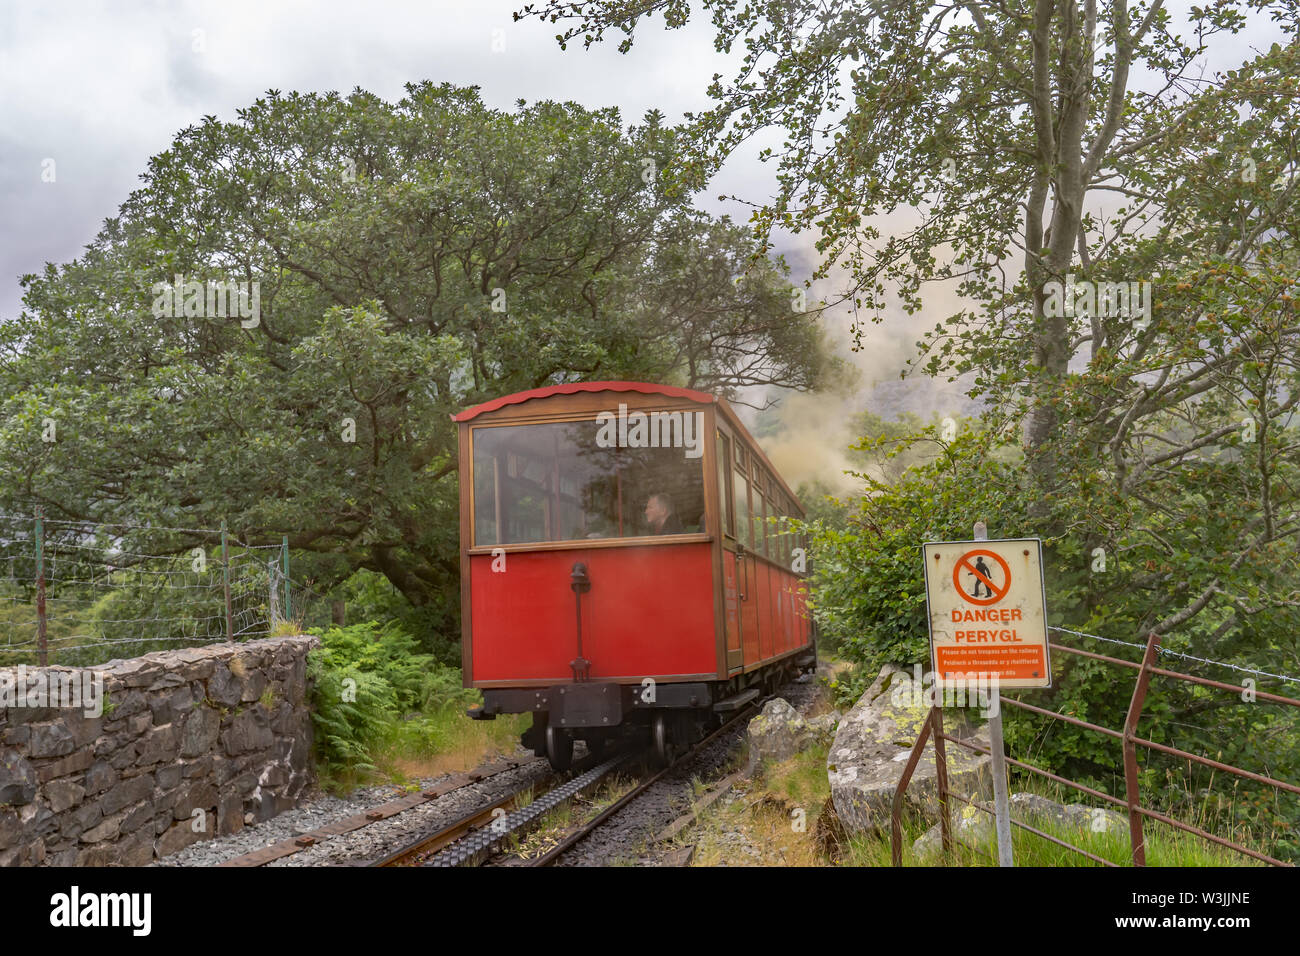 Mount Snowdon Railway, Llanberis, North Wales. A passenger carriage returning to Llanberis train station from the summit of Mount Snowdon - Stock Image